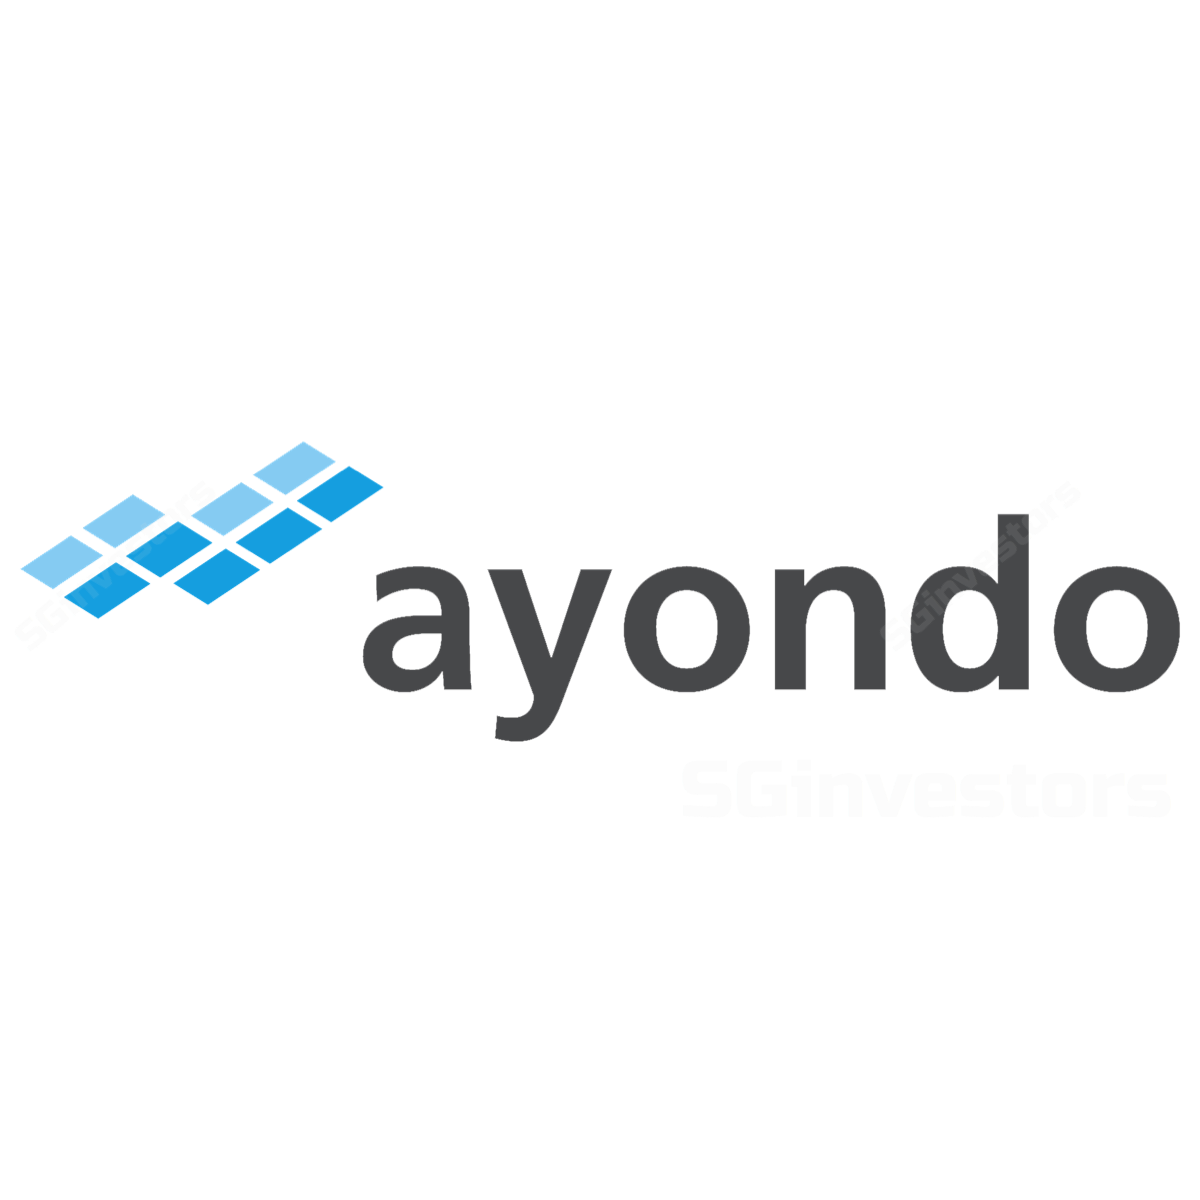 Ayondo Ltd - Phillip Securities Research 2018-08-30: The Alternative Asset Management Platform